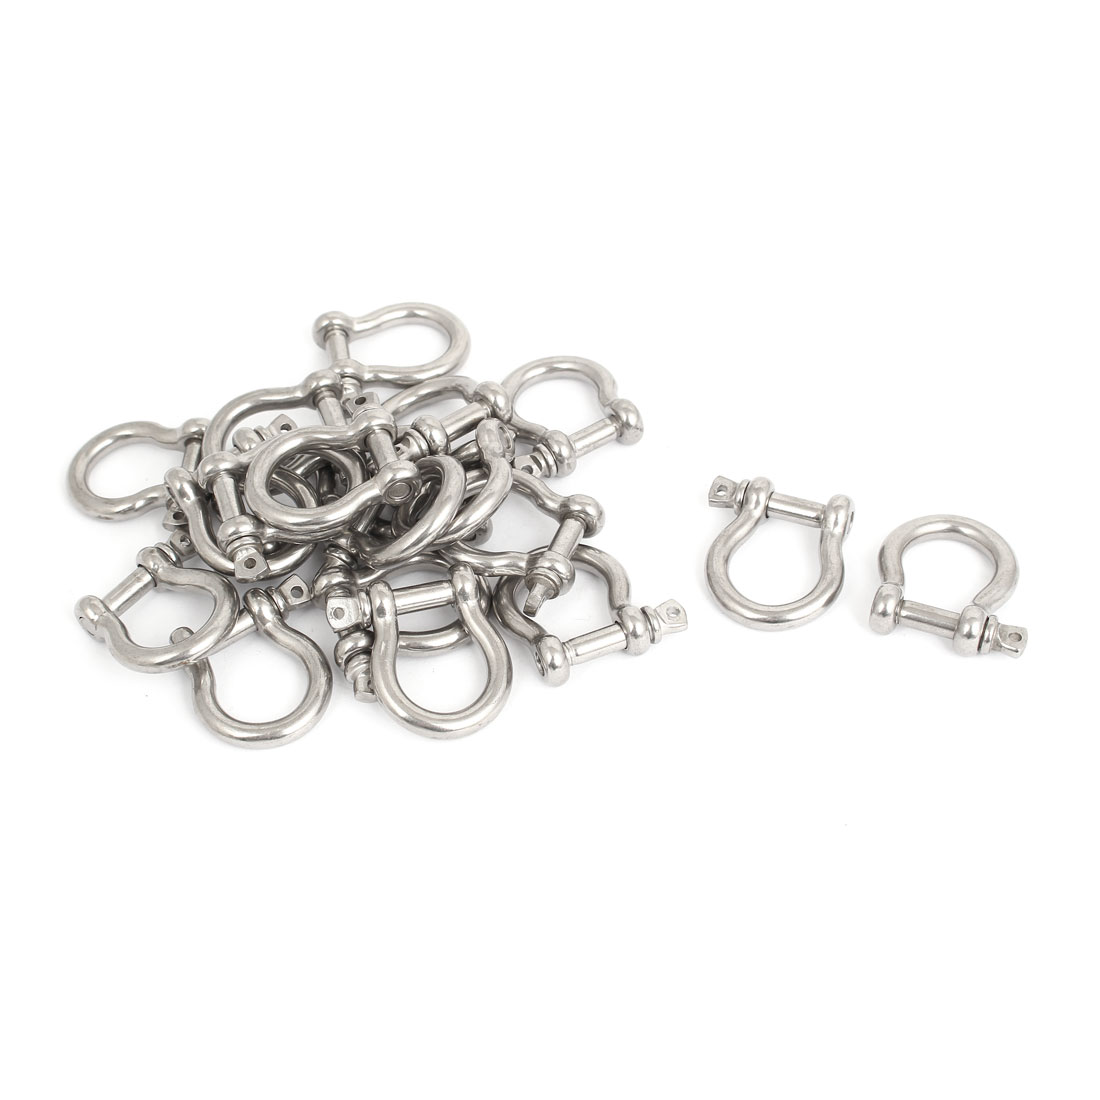 M6 Stainless Steel D Ring Bow Shackle U Lock Wire Rope Fastener Silver Tone 20 Pcs